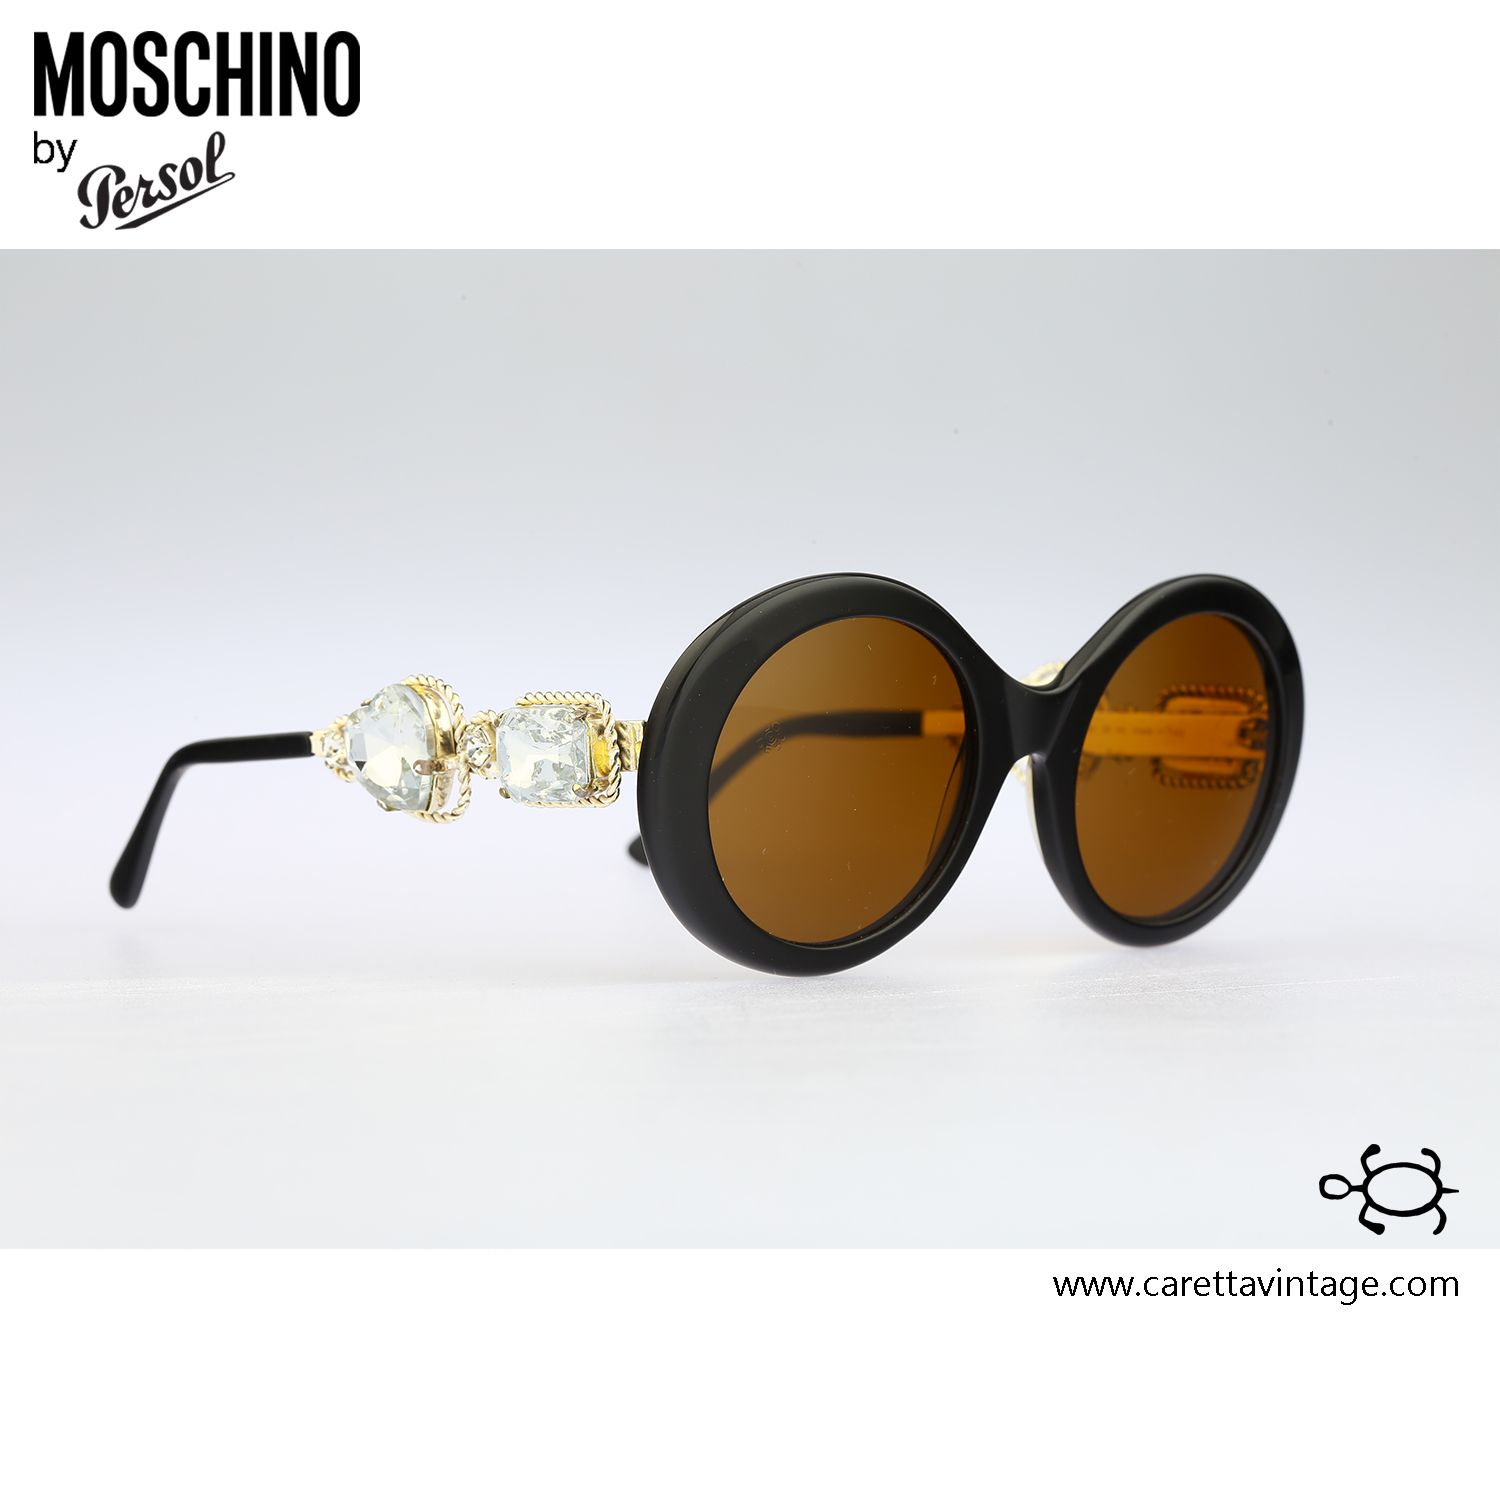 6a71f925fab Moschino BY Persol Ratti M253